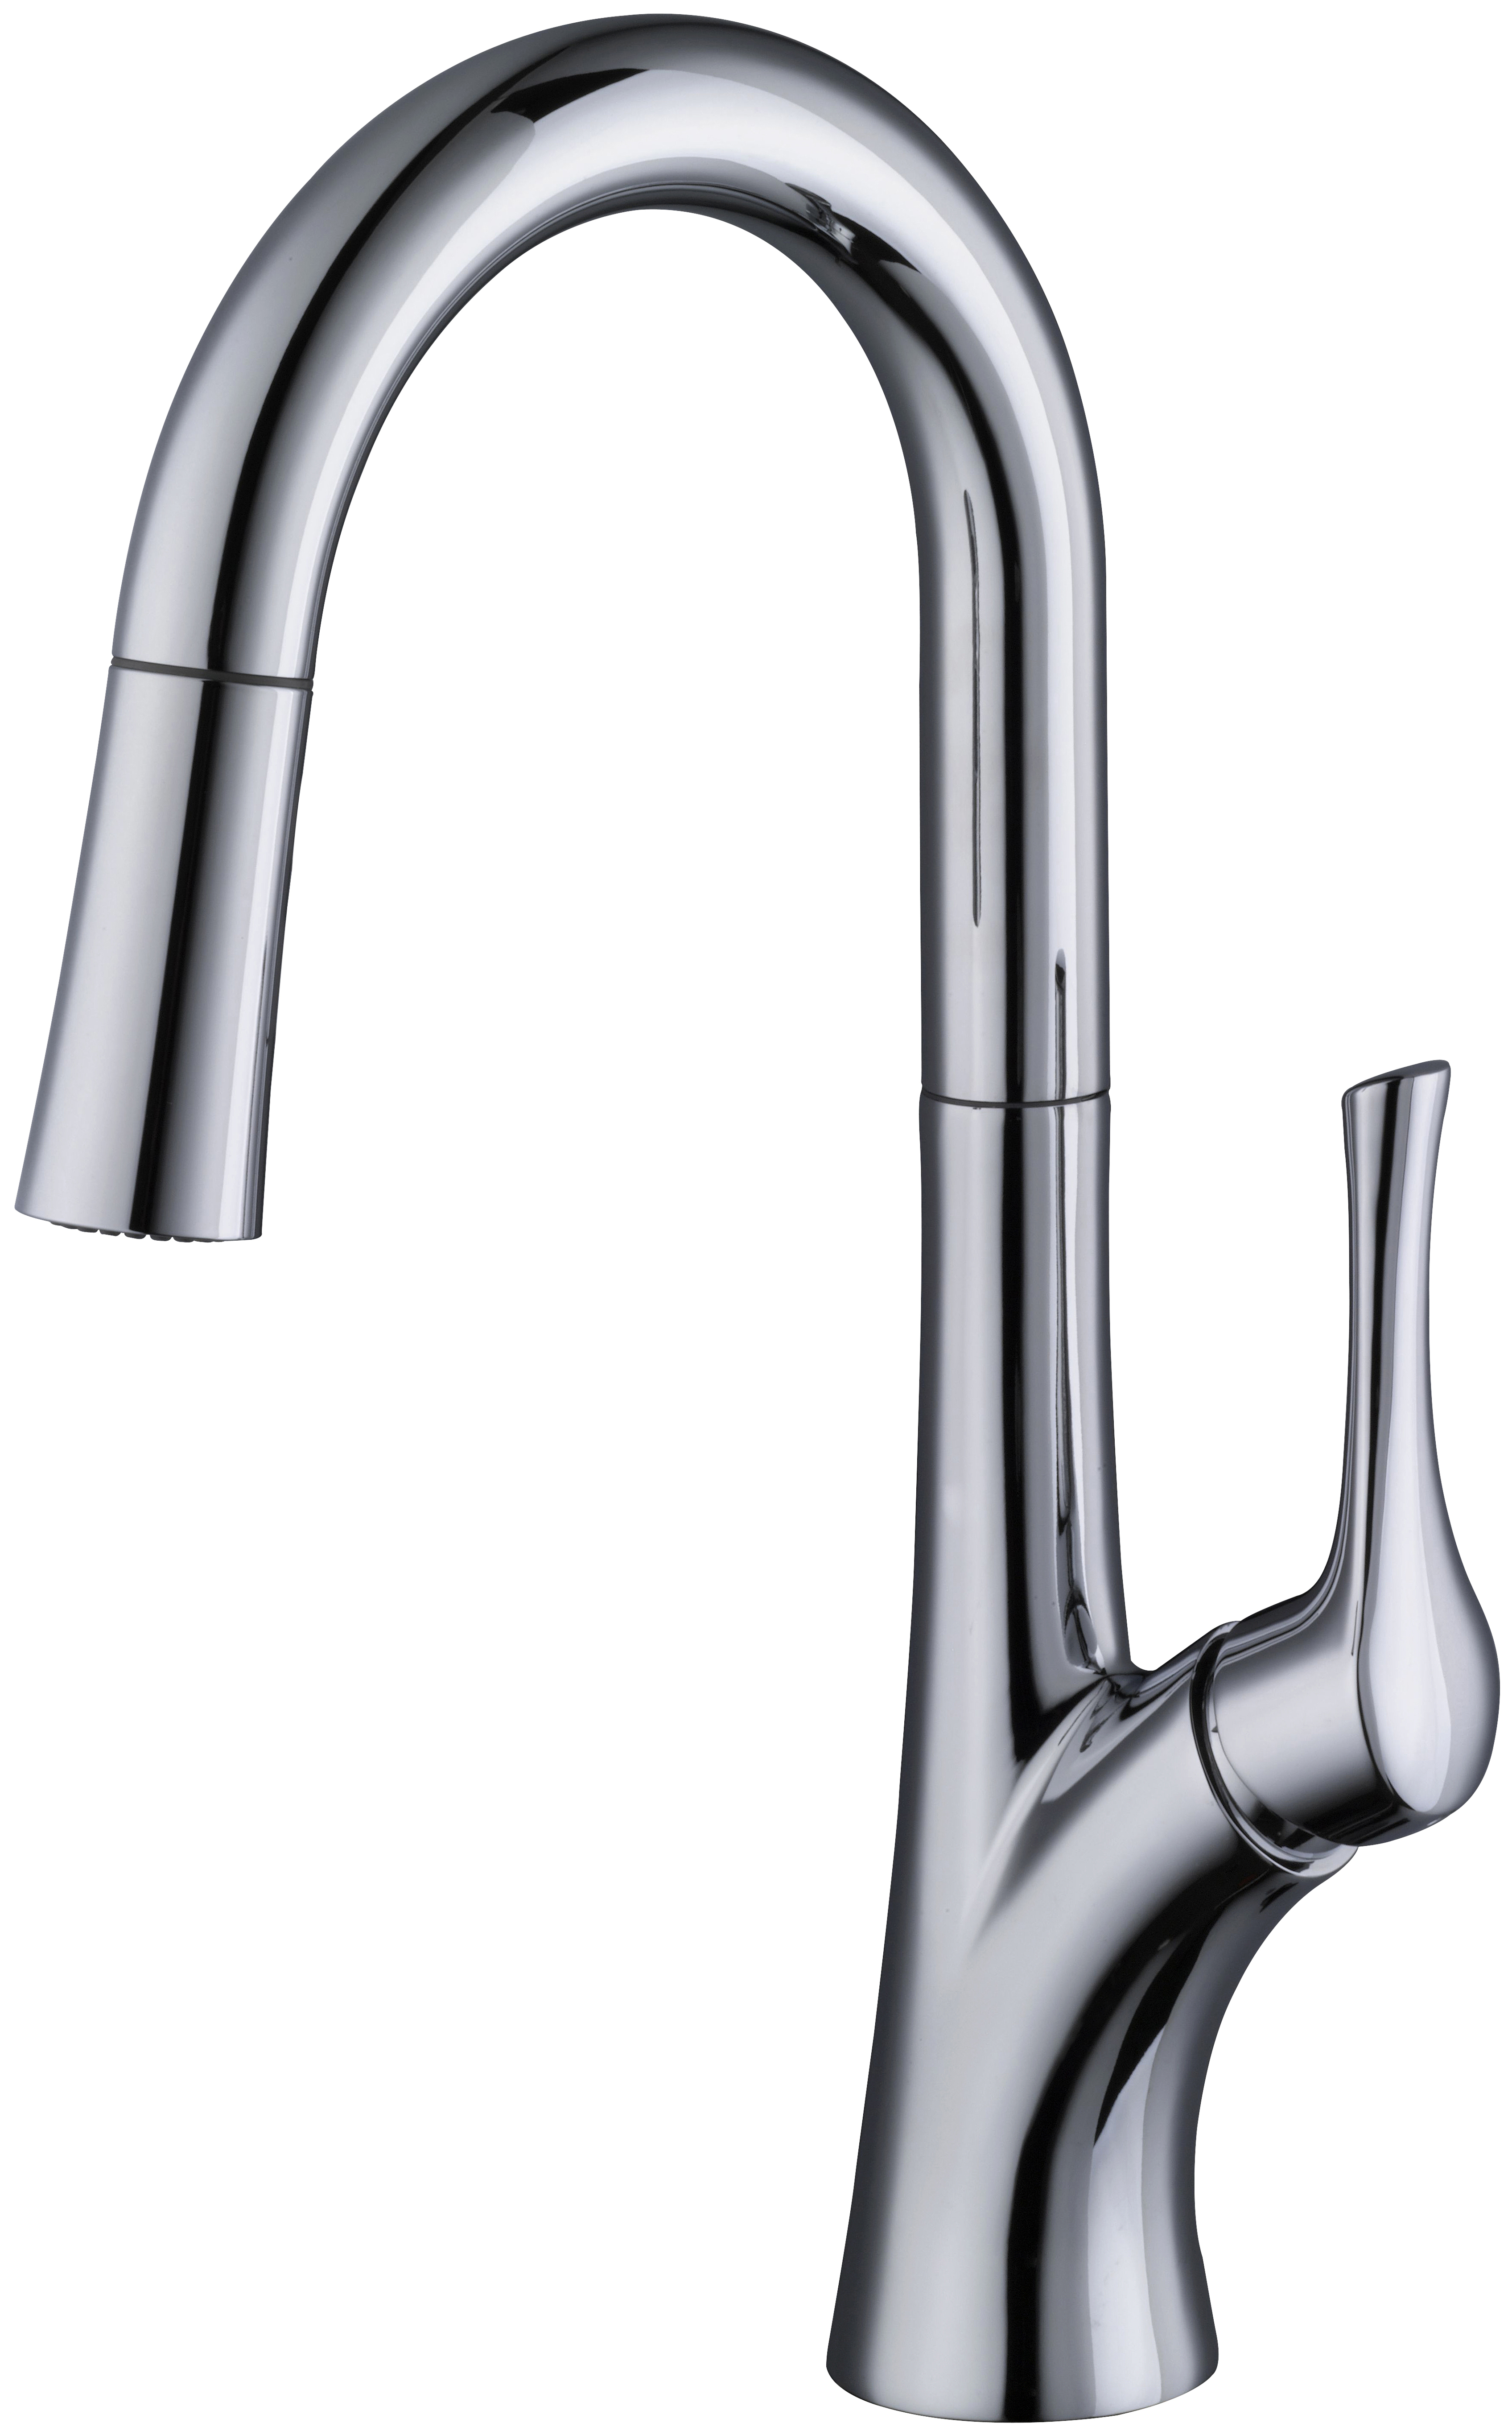 with unique com photos brizo for kitchen design faucets bathroom htsrec adjustable luxury beautiful of faucet ideas